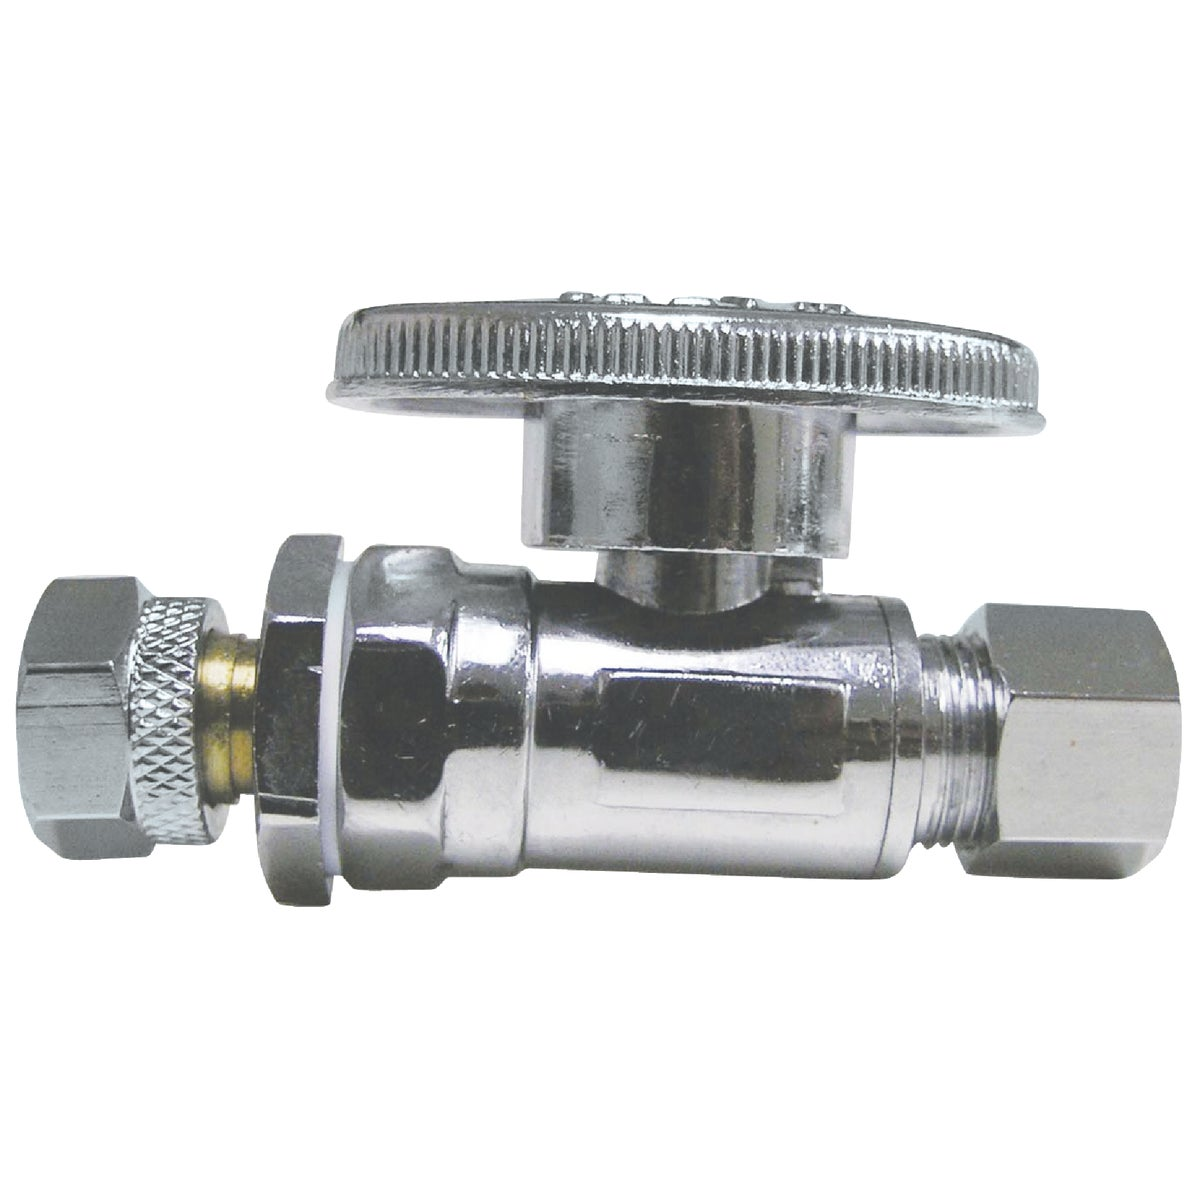 3/8C RETROFIT STRT VALVE - LFPBQT-615R by Watts Regulator Co